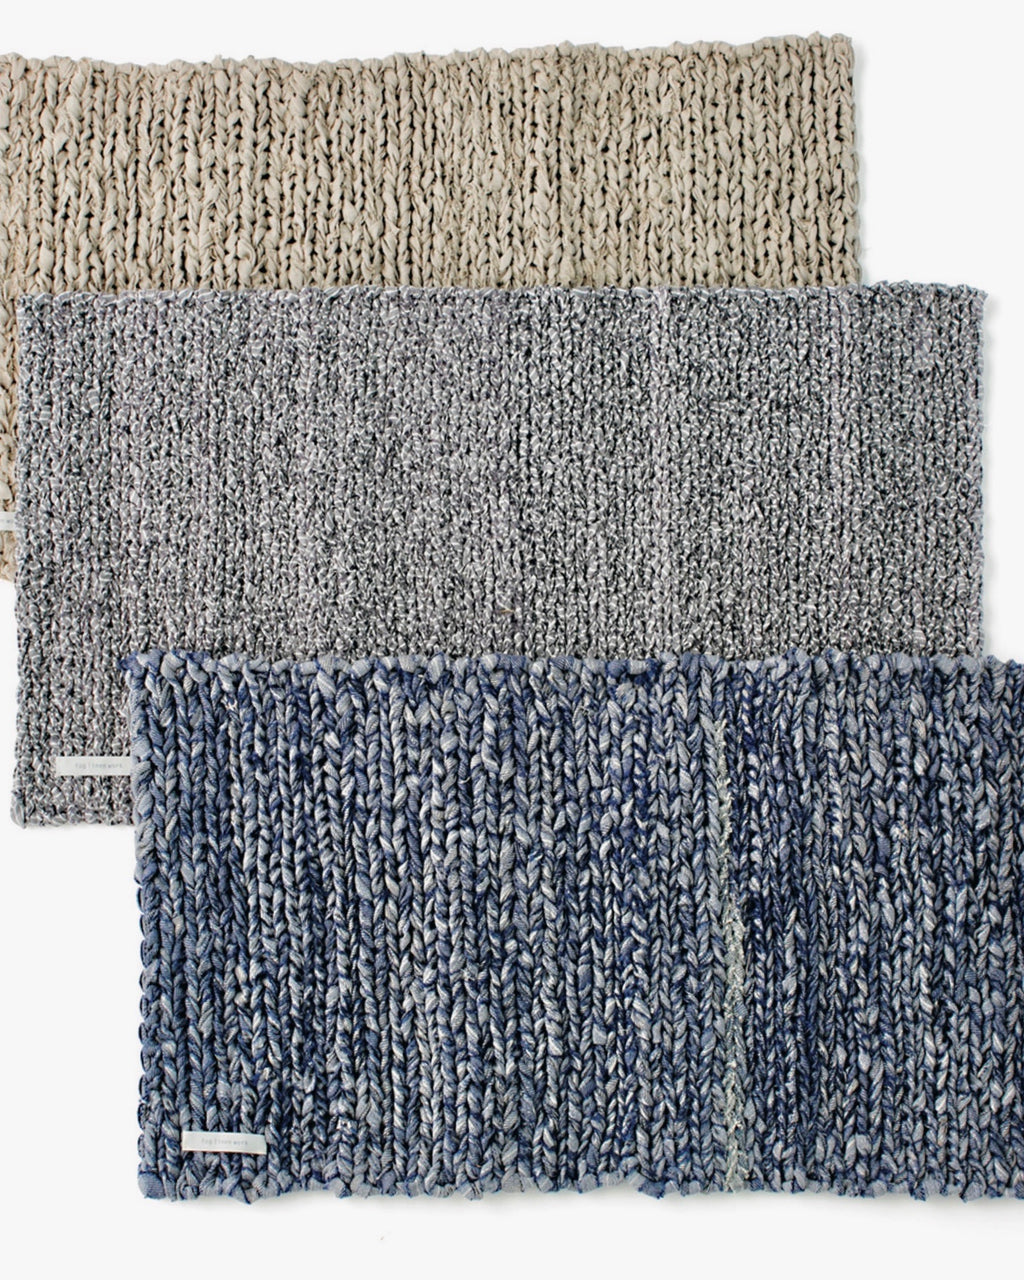 Linen Knit Floor Mat